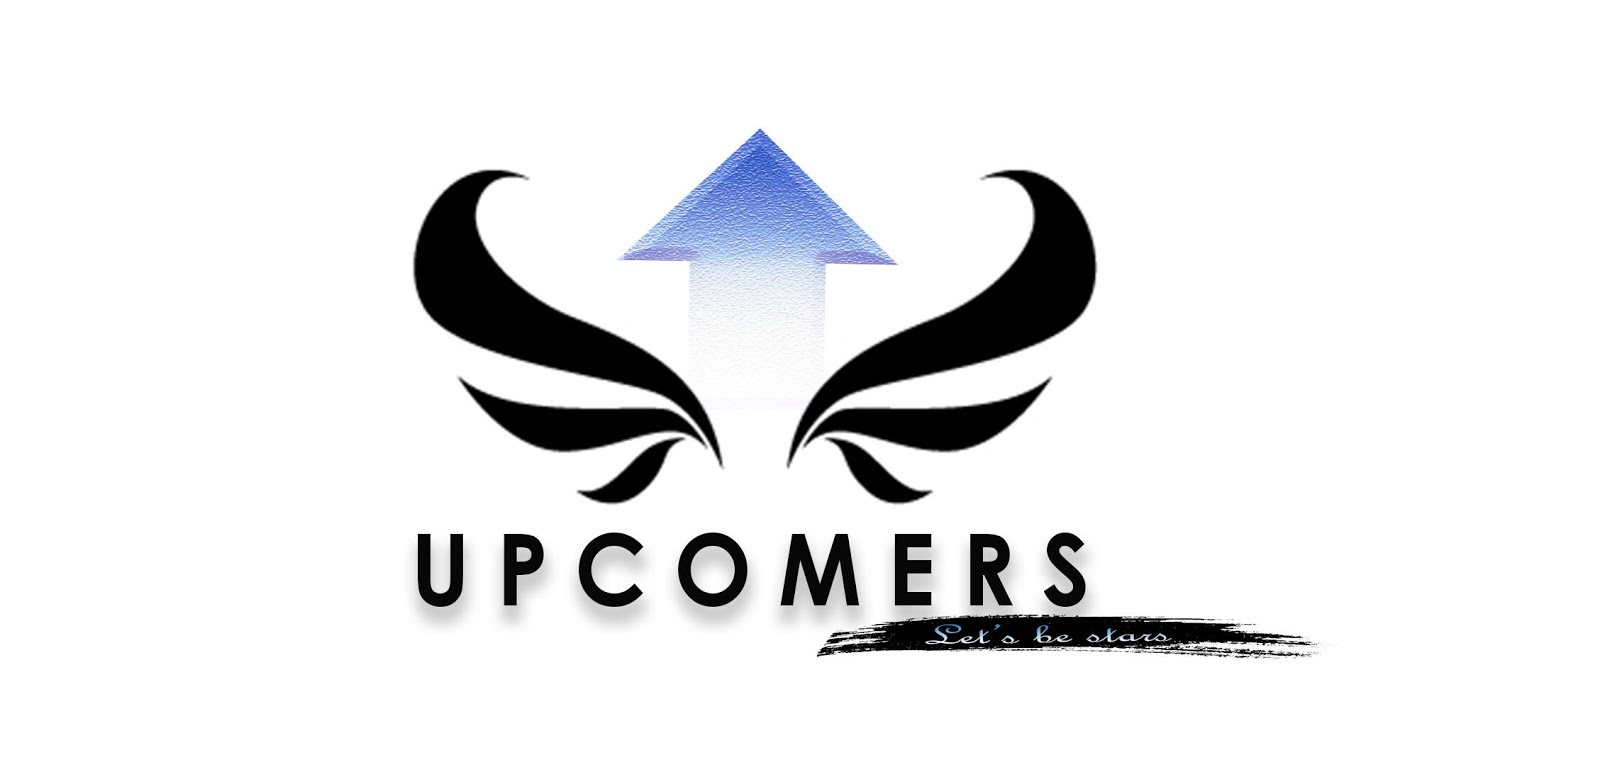 Upcomers